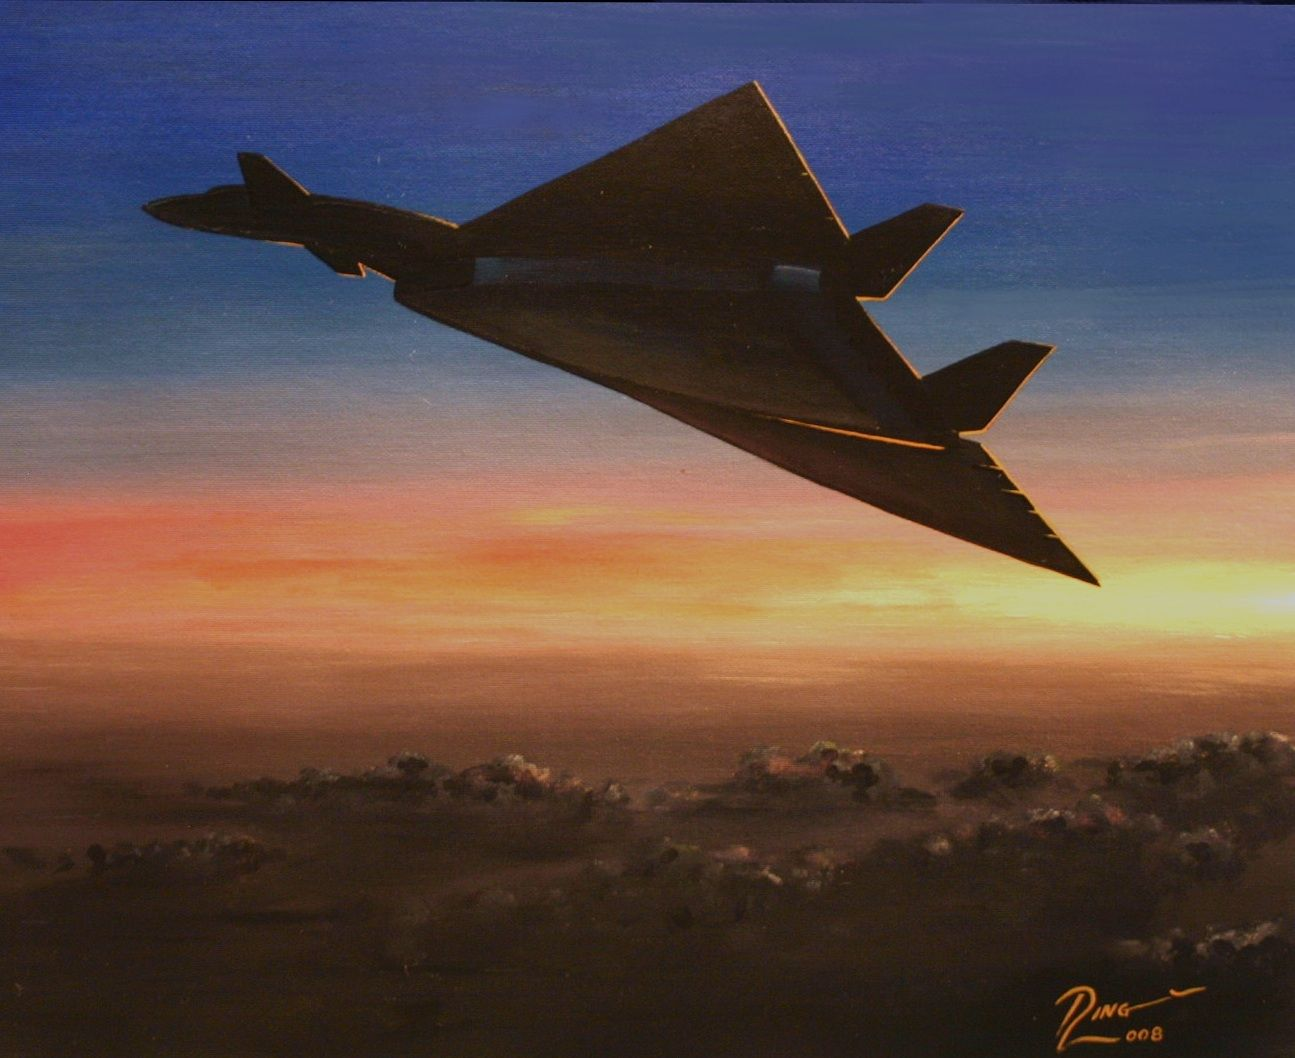 Idea by Andy Freeman on Airplanes Fighter jets, Airplane